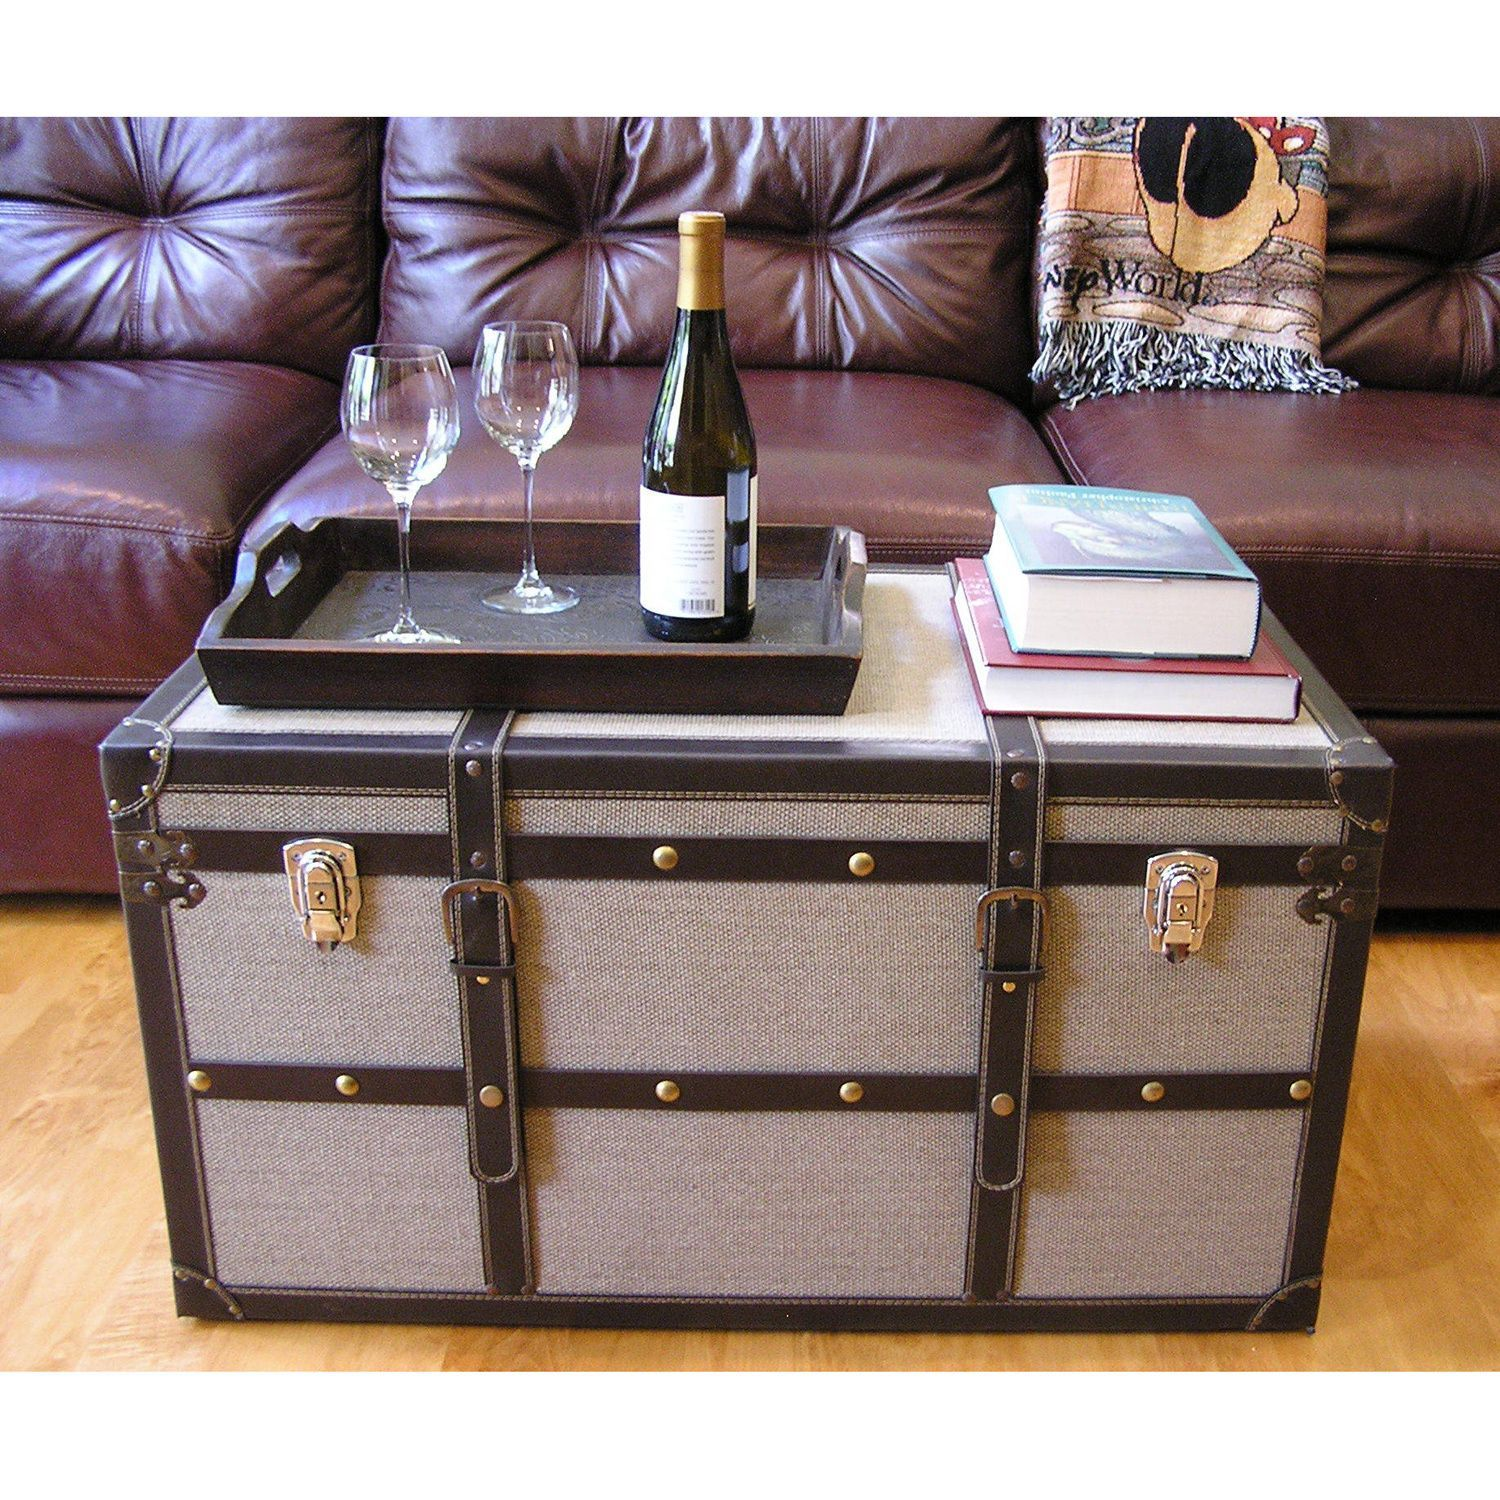 This beautiful wood trunk features old fashioned hardware for an